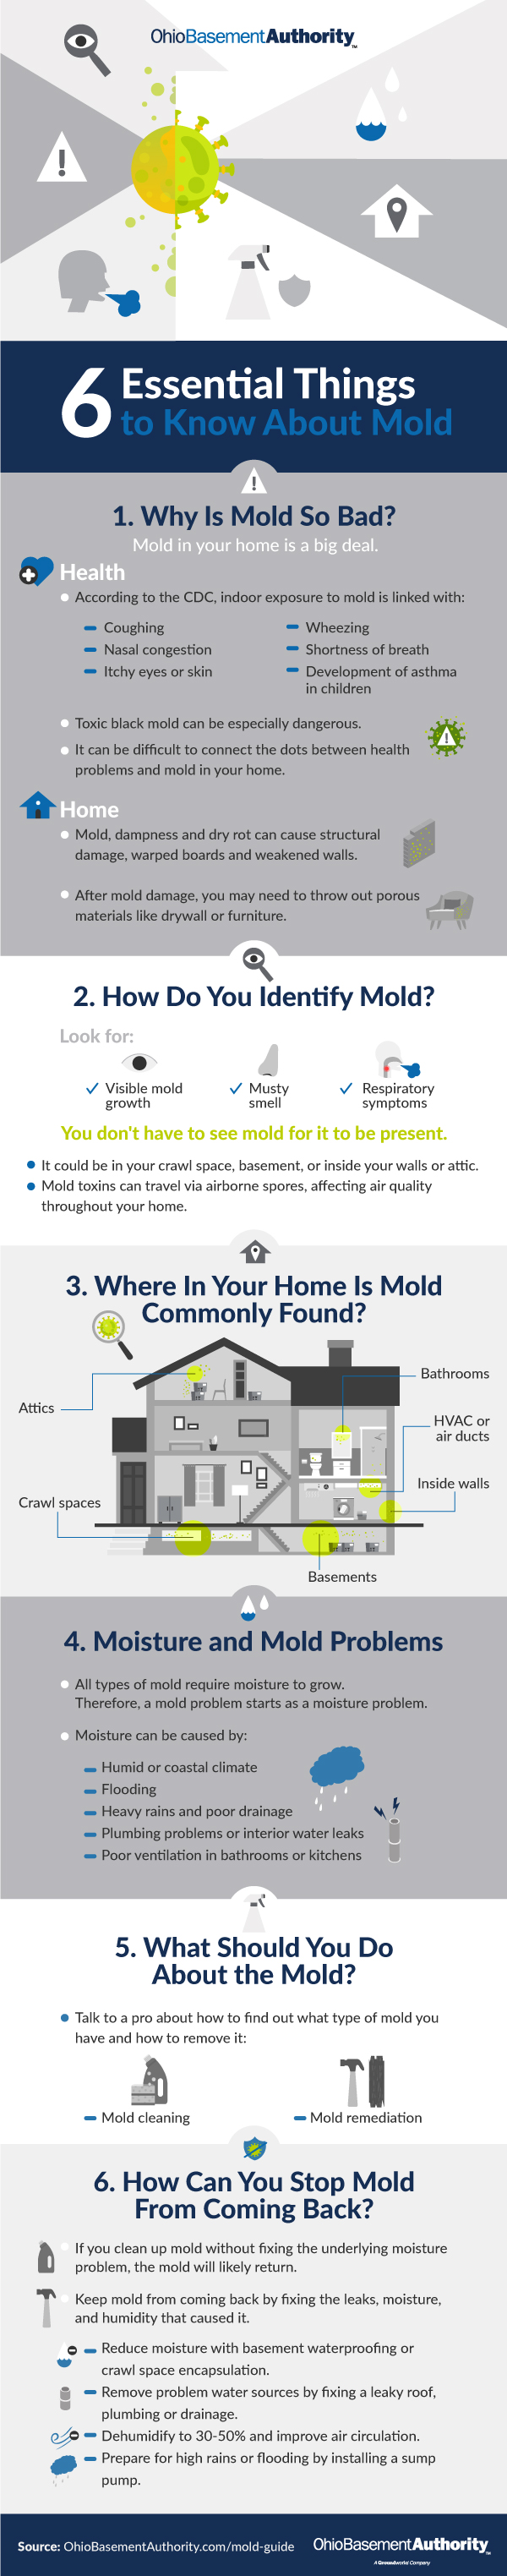 6 Essential Things to Know About Mold